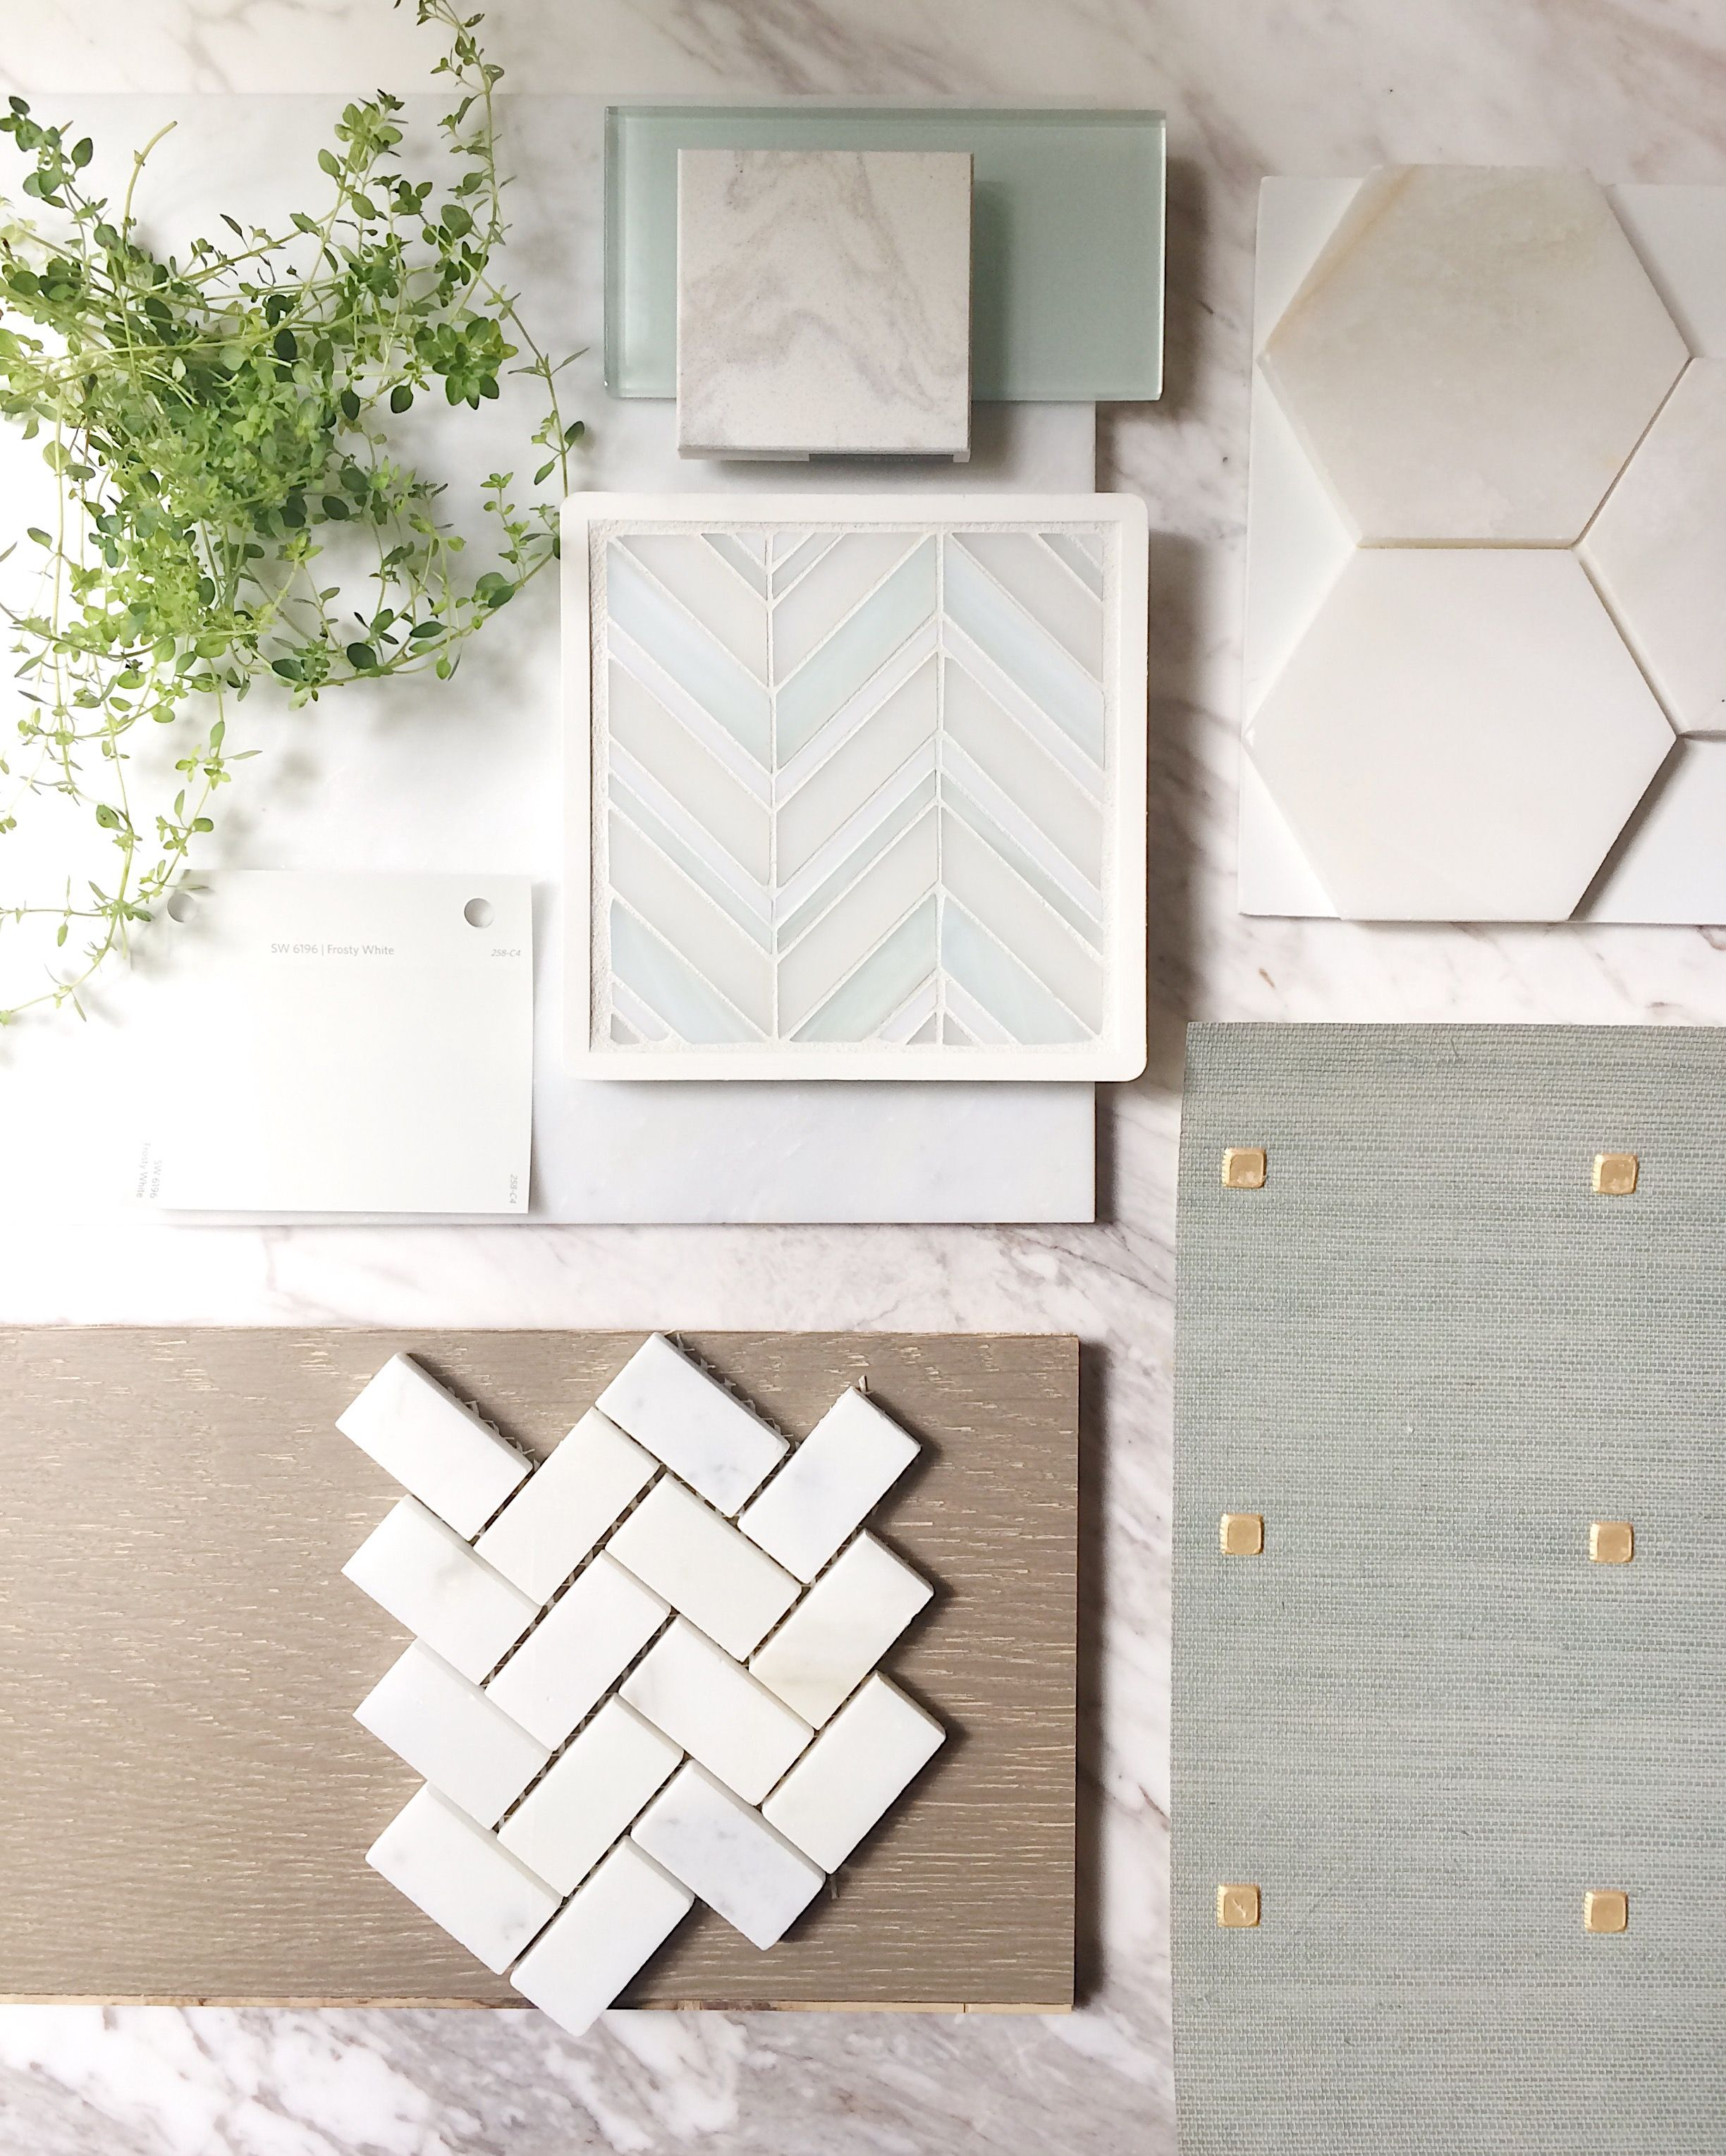 A Bathroom Renovation Strategy — Alison Giese Interiors in ...